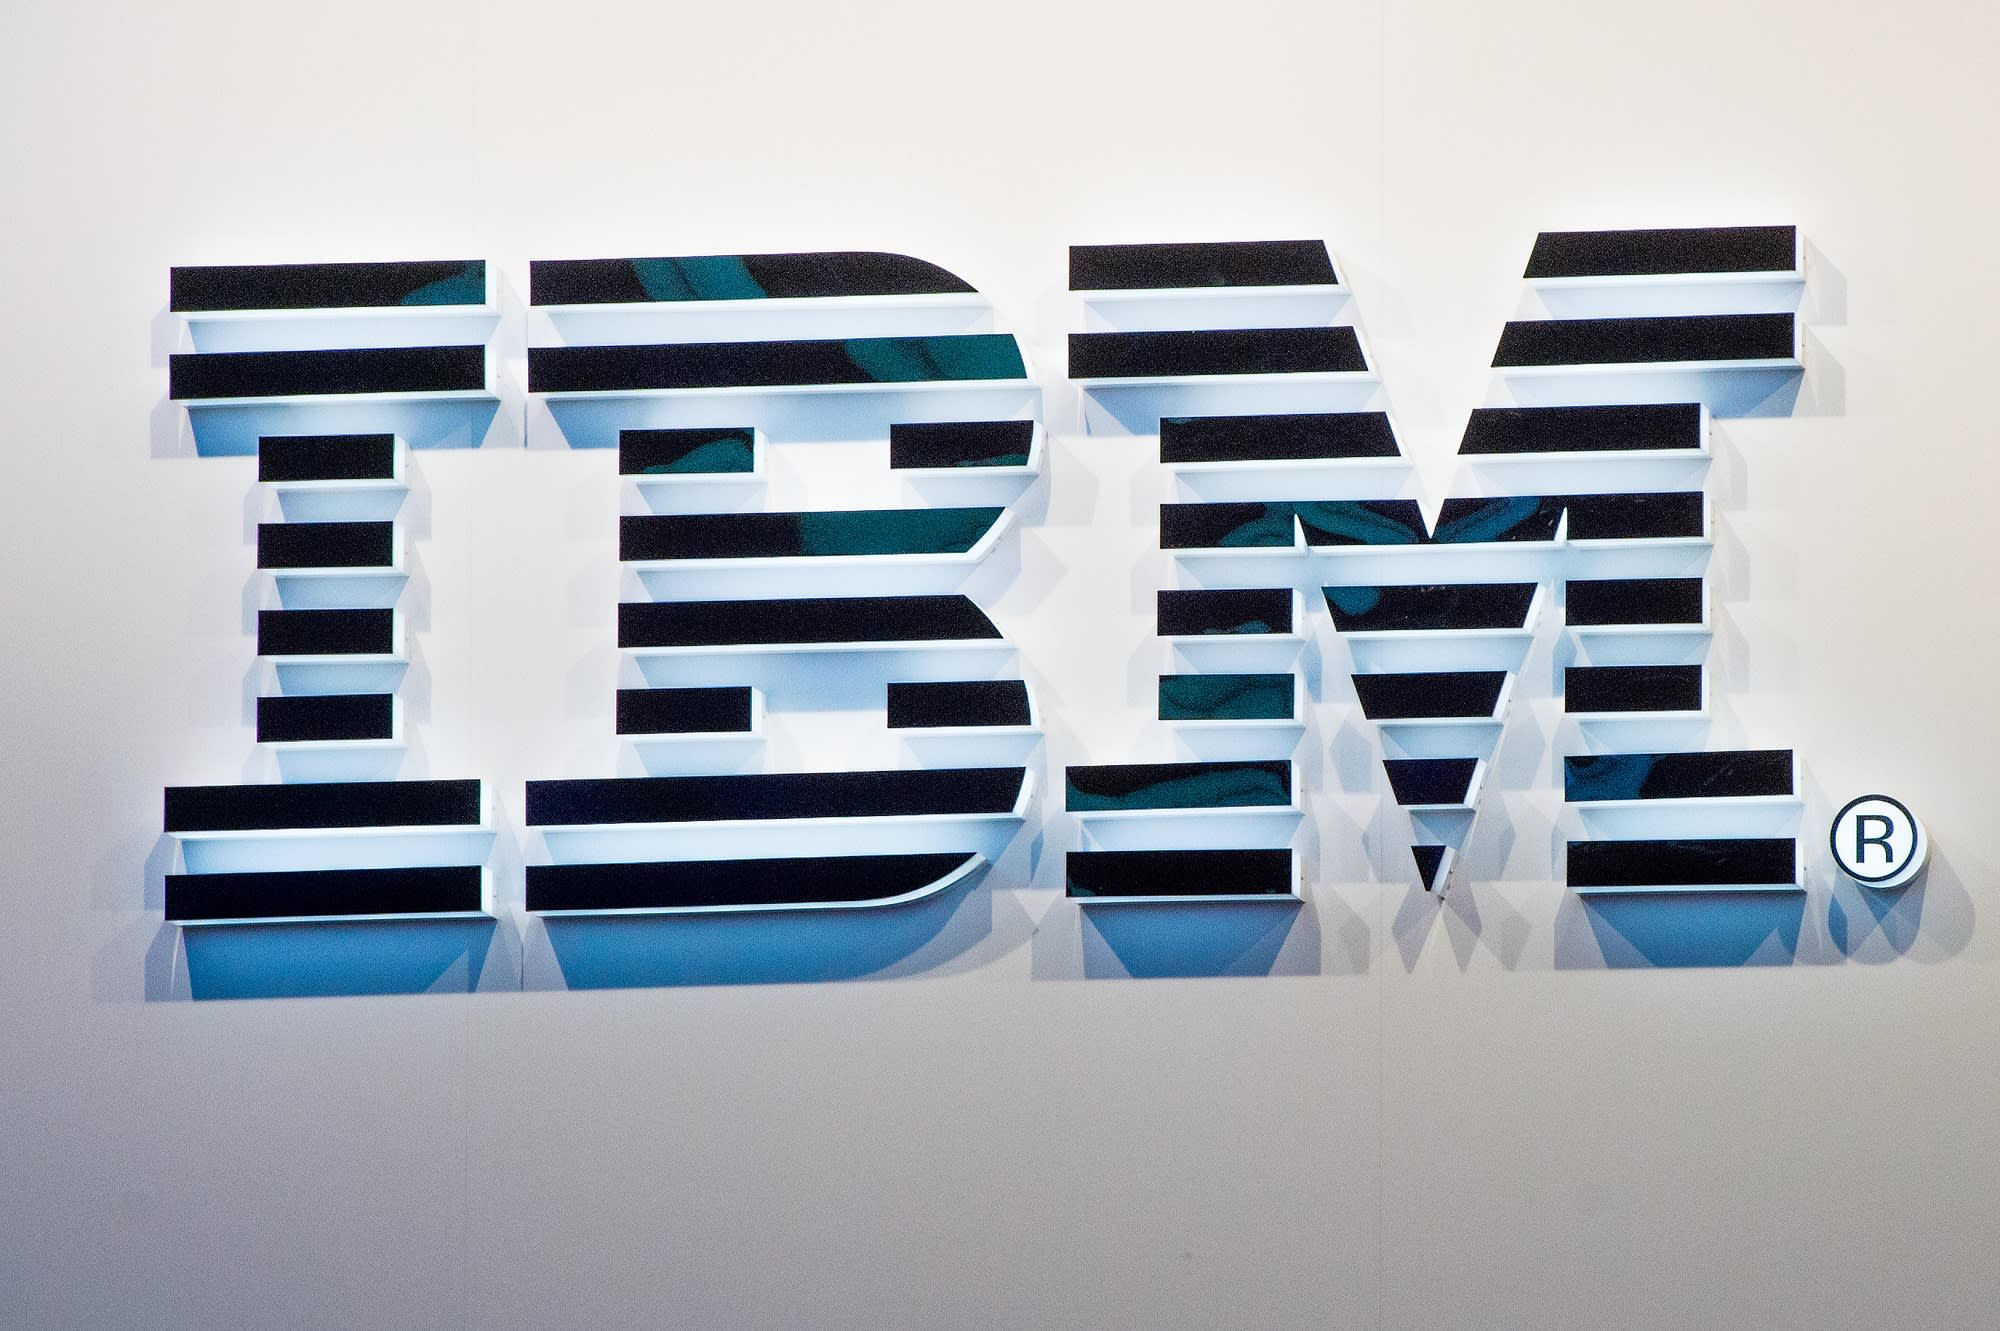 Ibm shares to weigh on the dow biocorpaavc